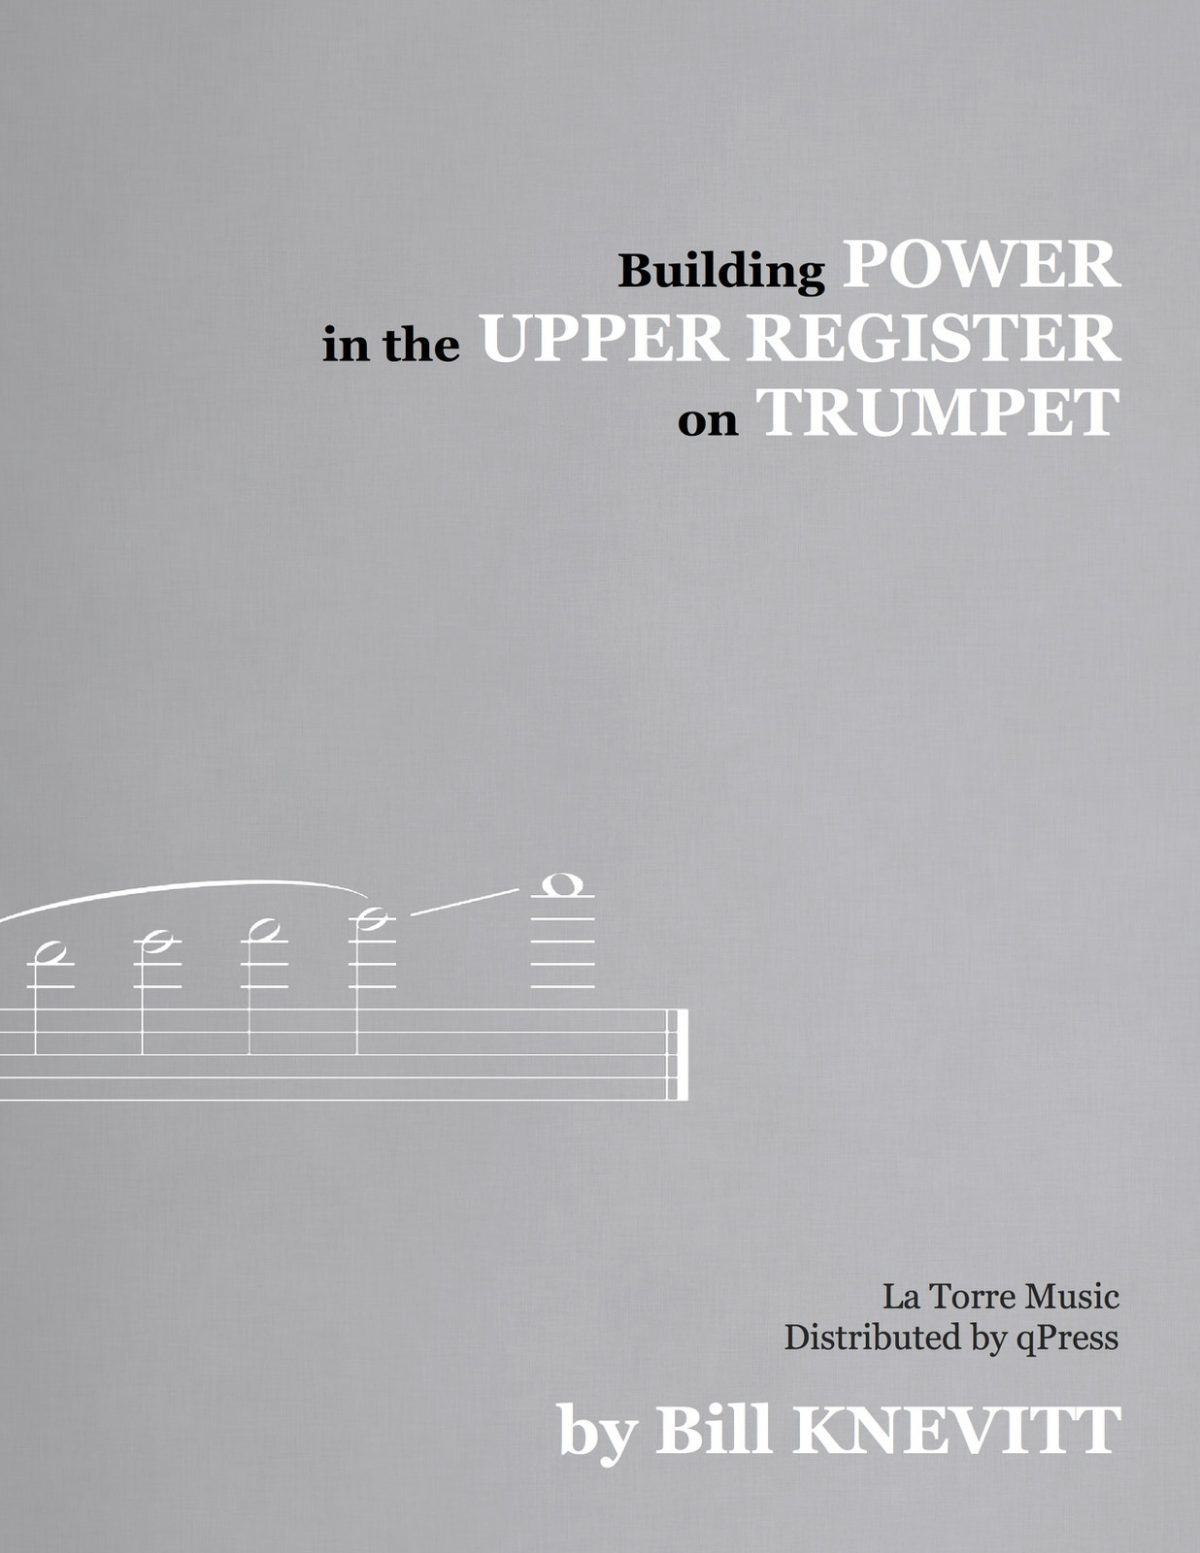 Knevitt, Building Power in the Upper Register on Trumpet